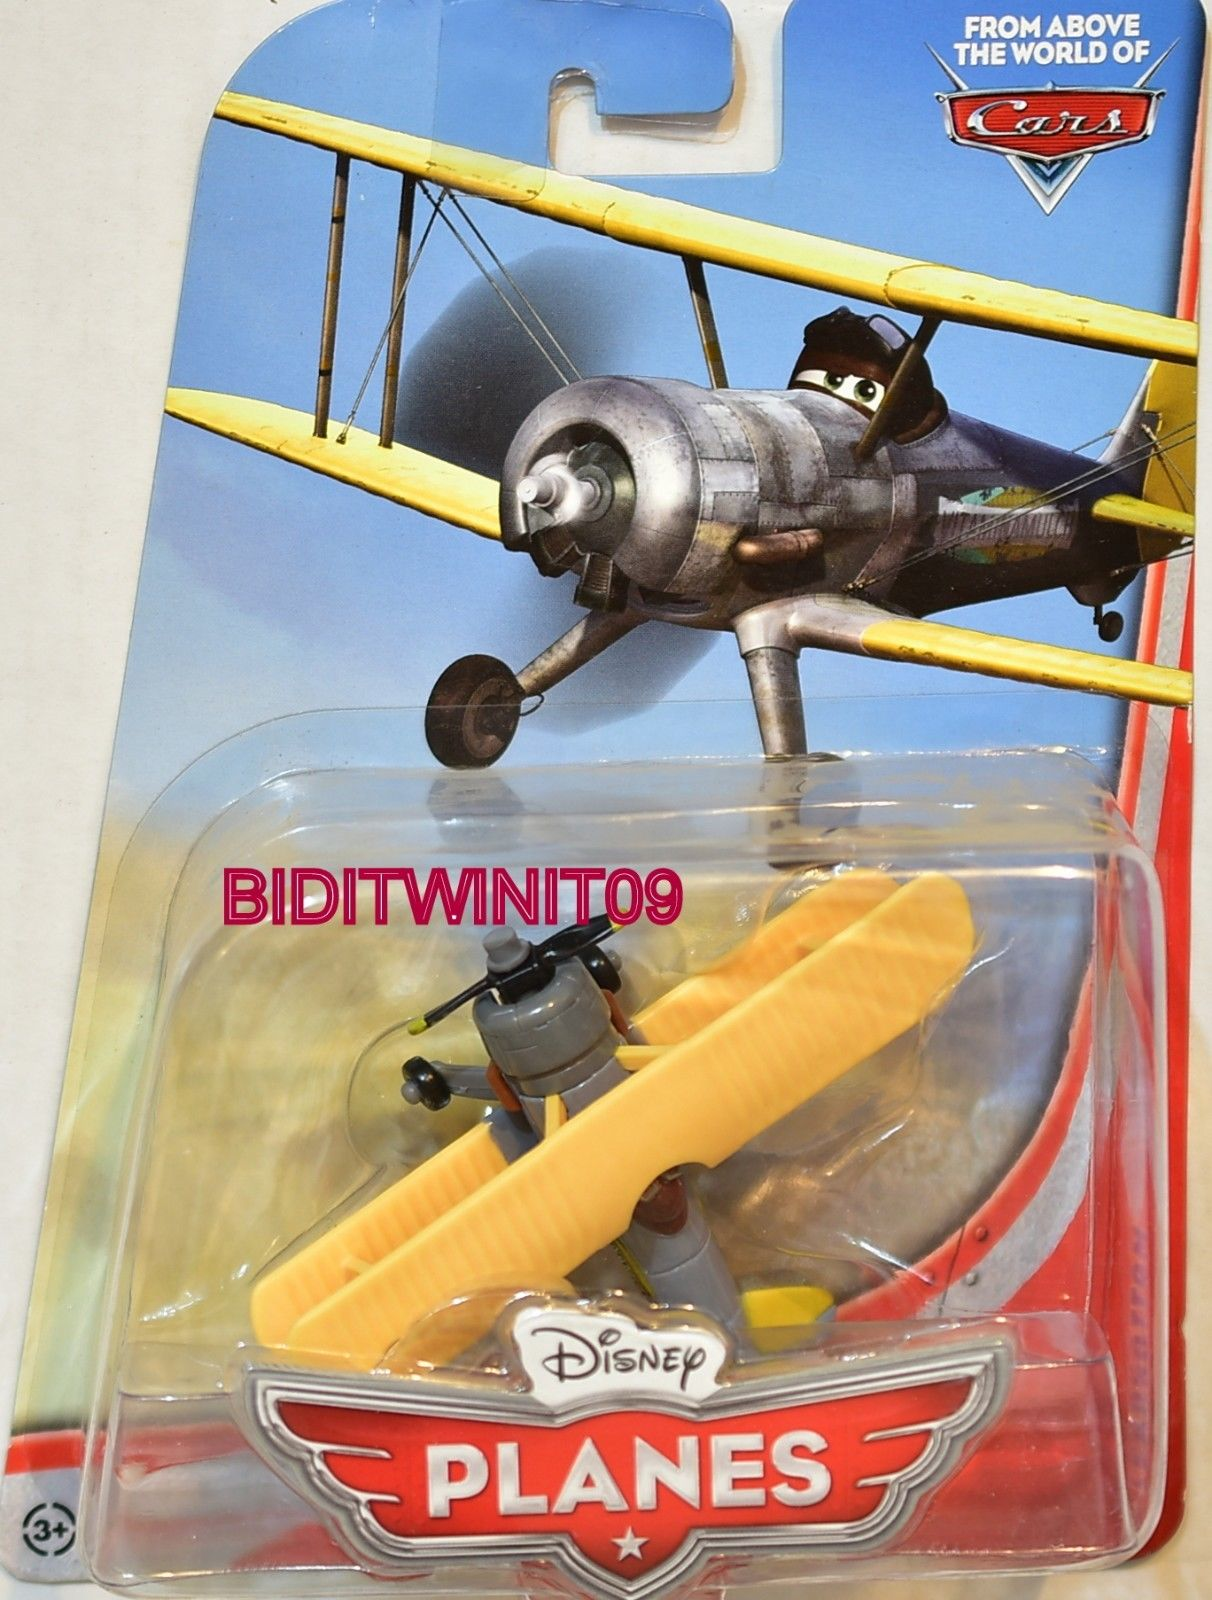 DISNEY PLANES FROM ABOVE THE WORLD OF CARS LEADBOTTOM